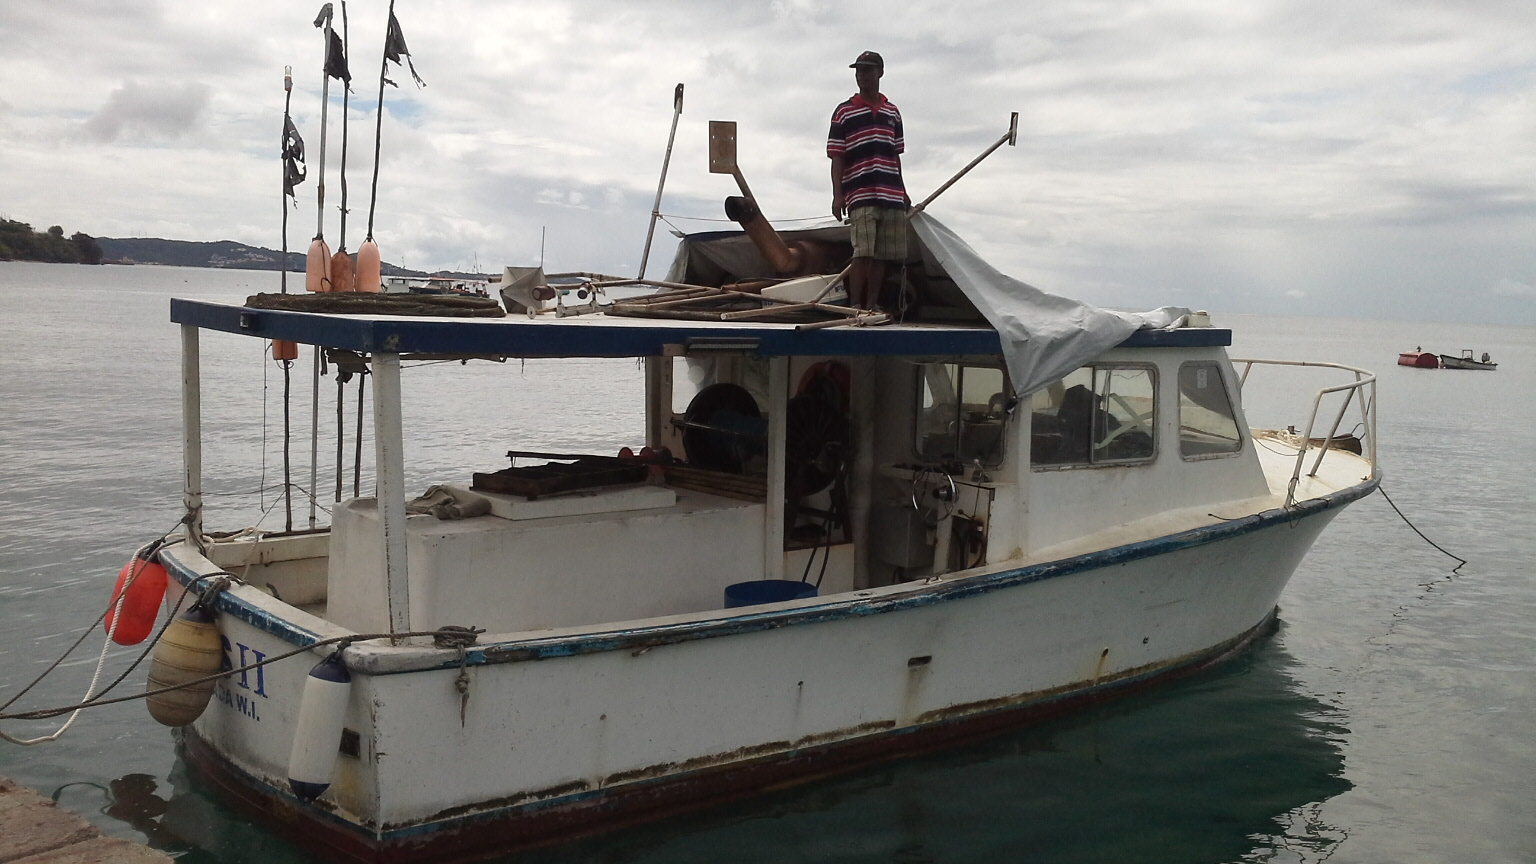 Fisheries creates employment - CRFM